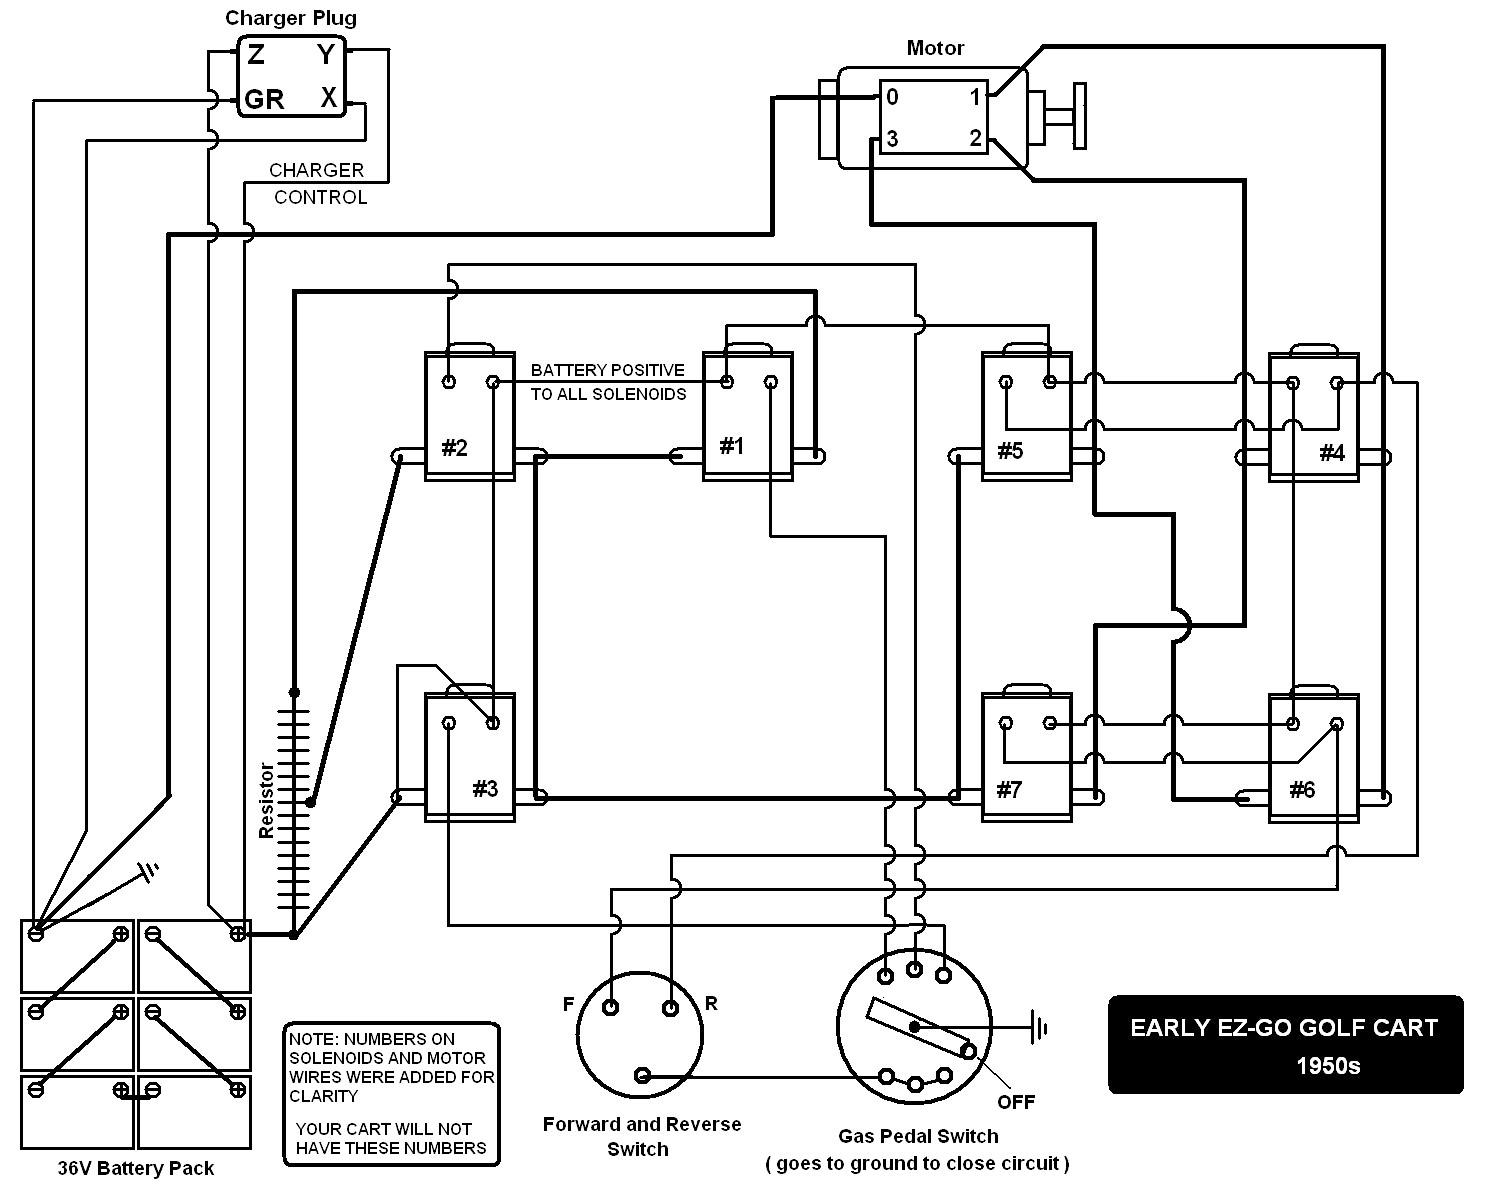 DIAGRAM] 2002 Western Golf Cart Wiring Diagram FULL Version HD Quality Wiring  Diagram - 1110VWIRING1.ARBREDESVOIX.FR